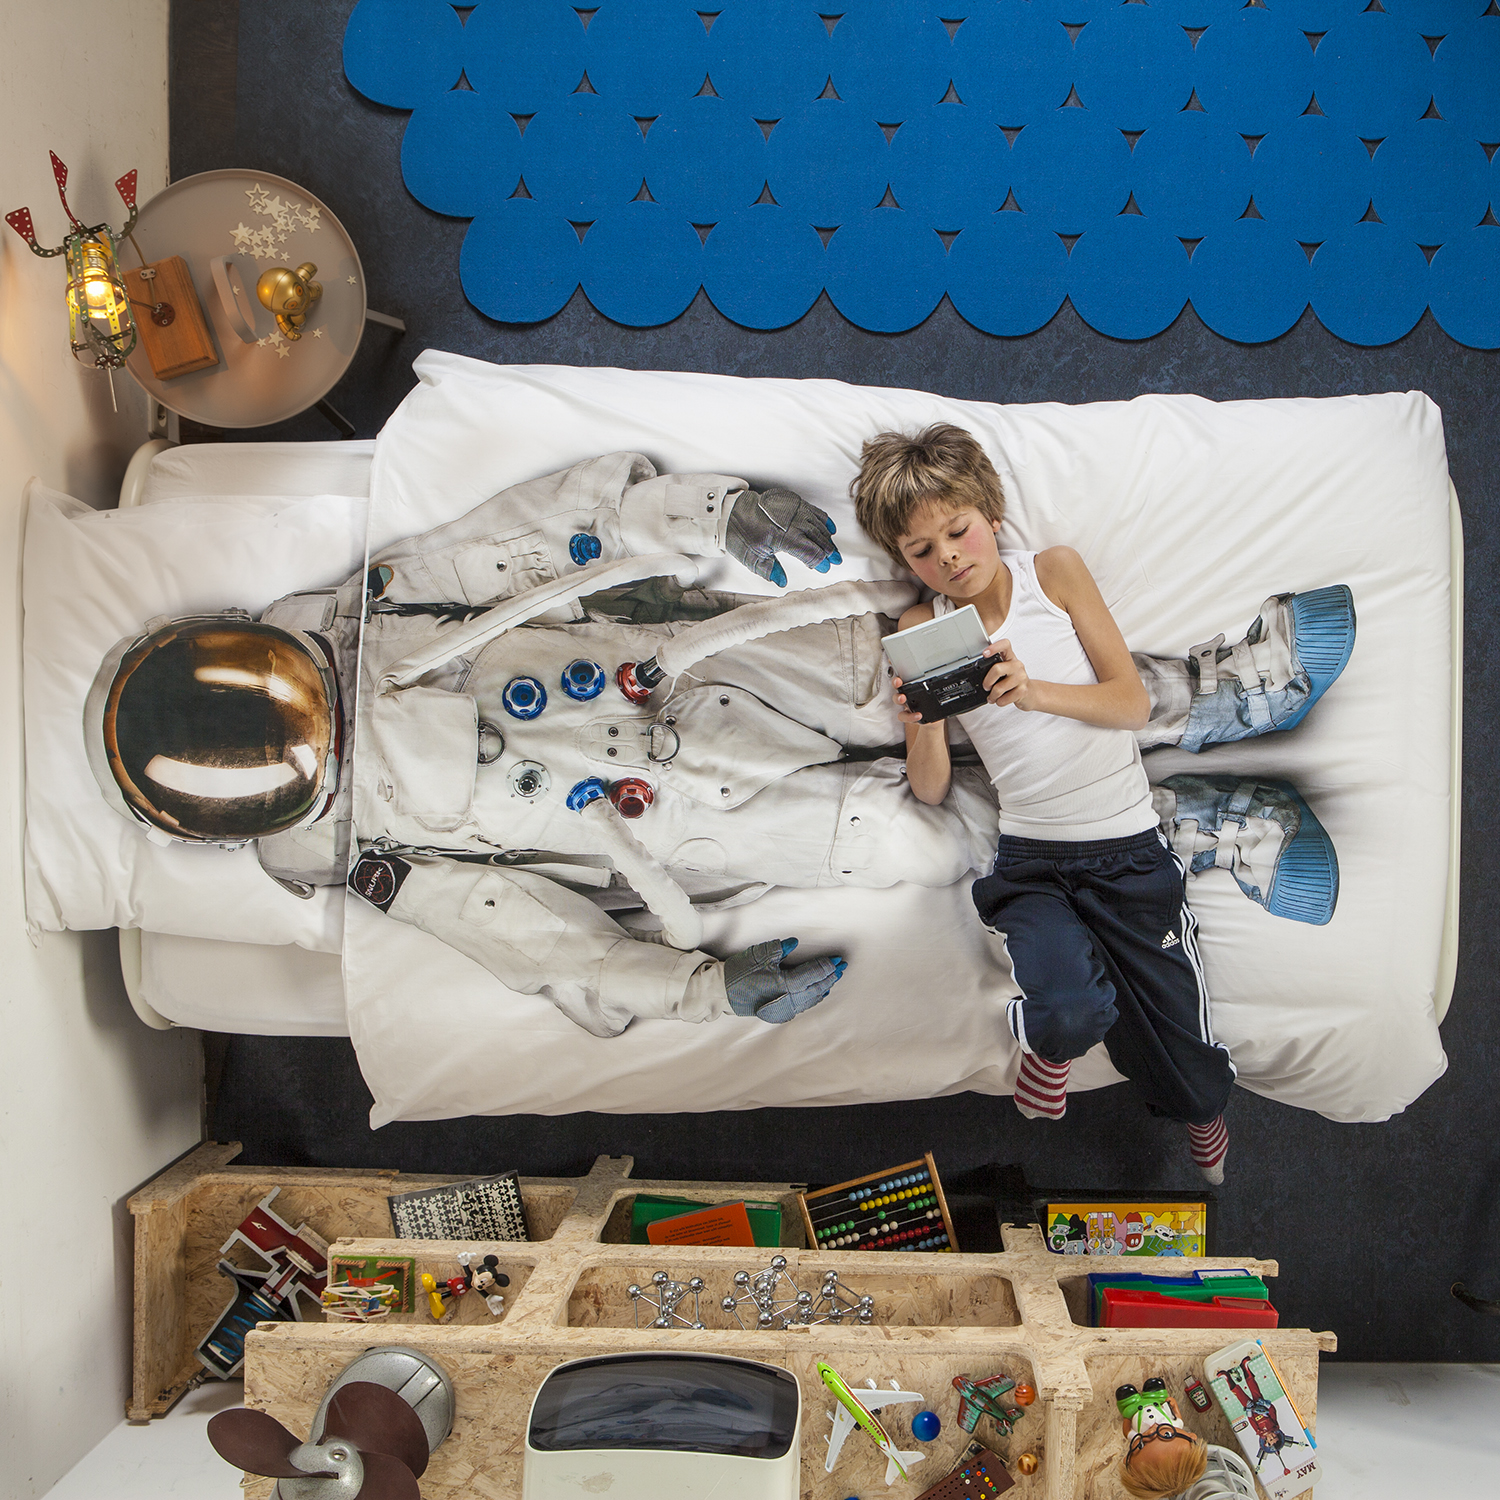 astronaut bedsheets for kids room